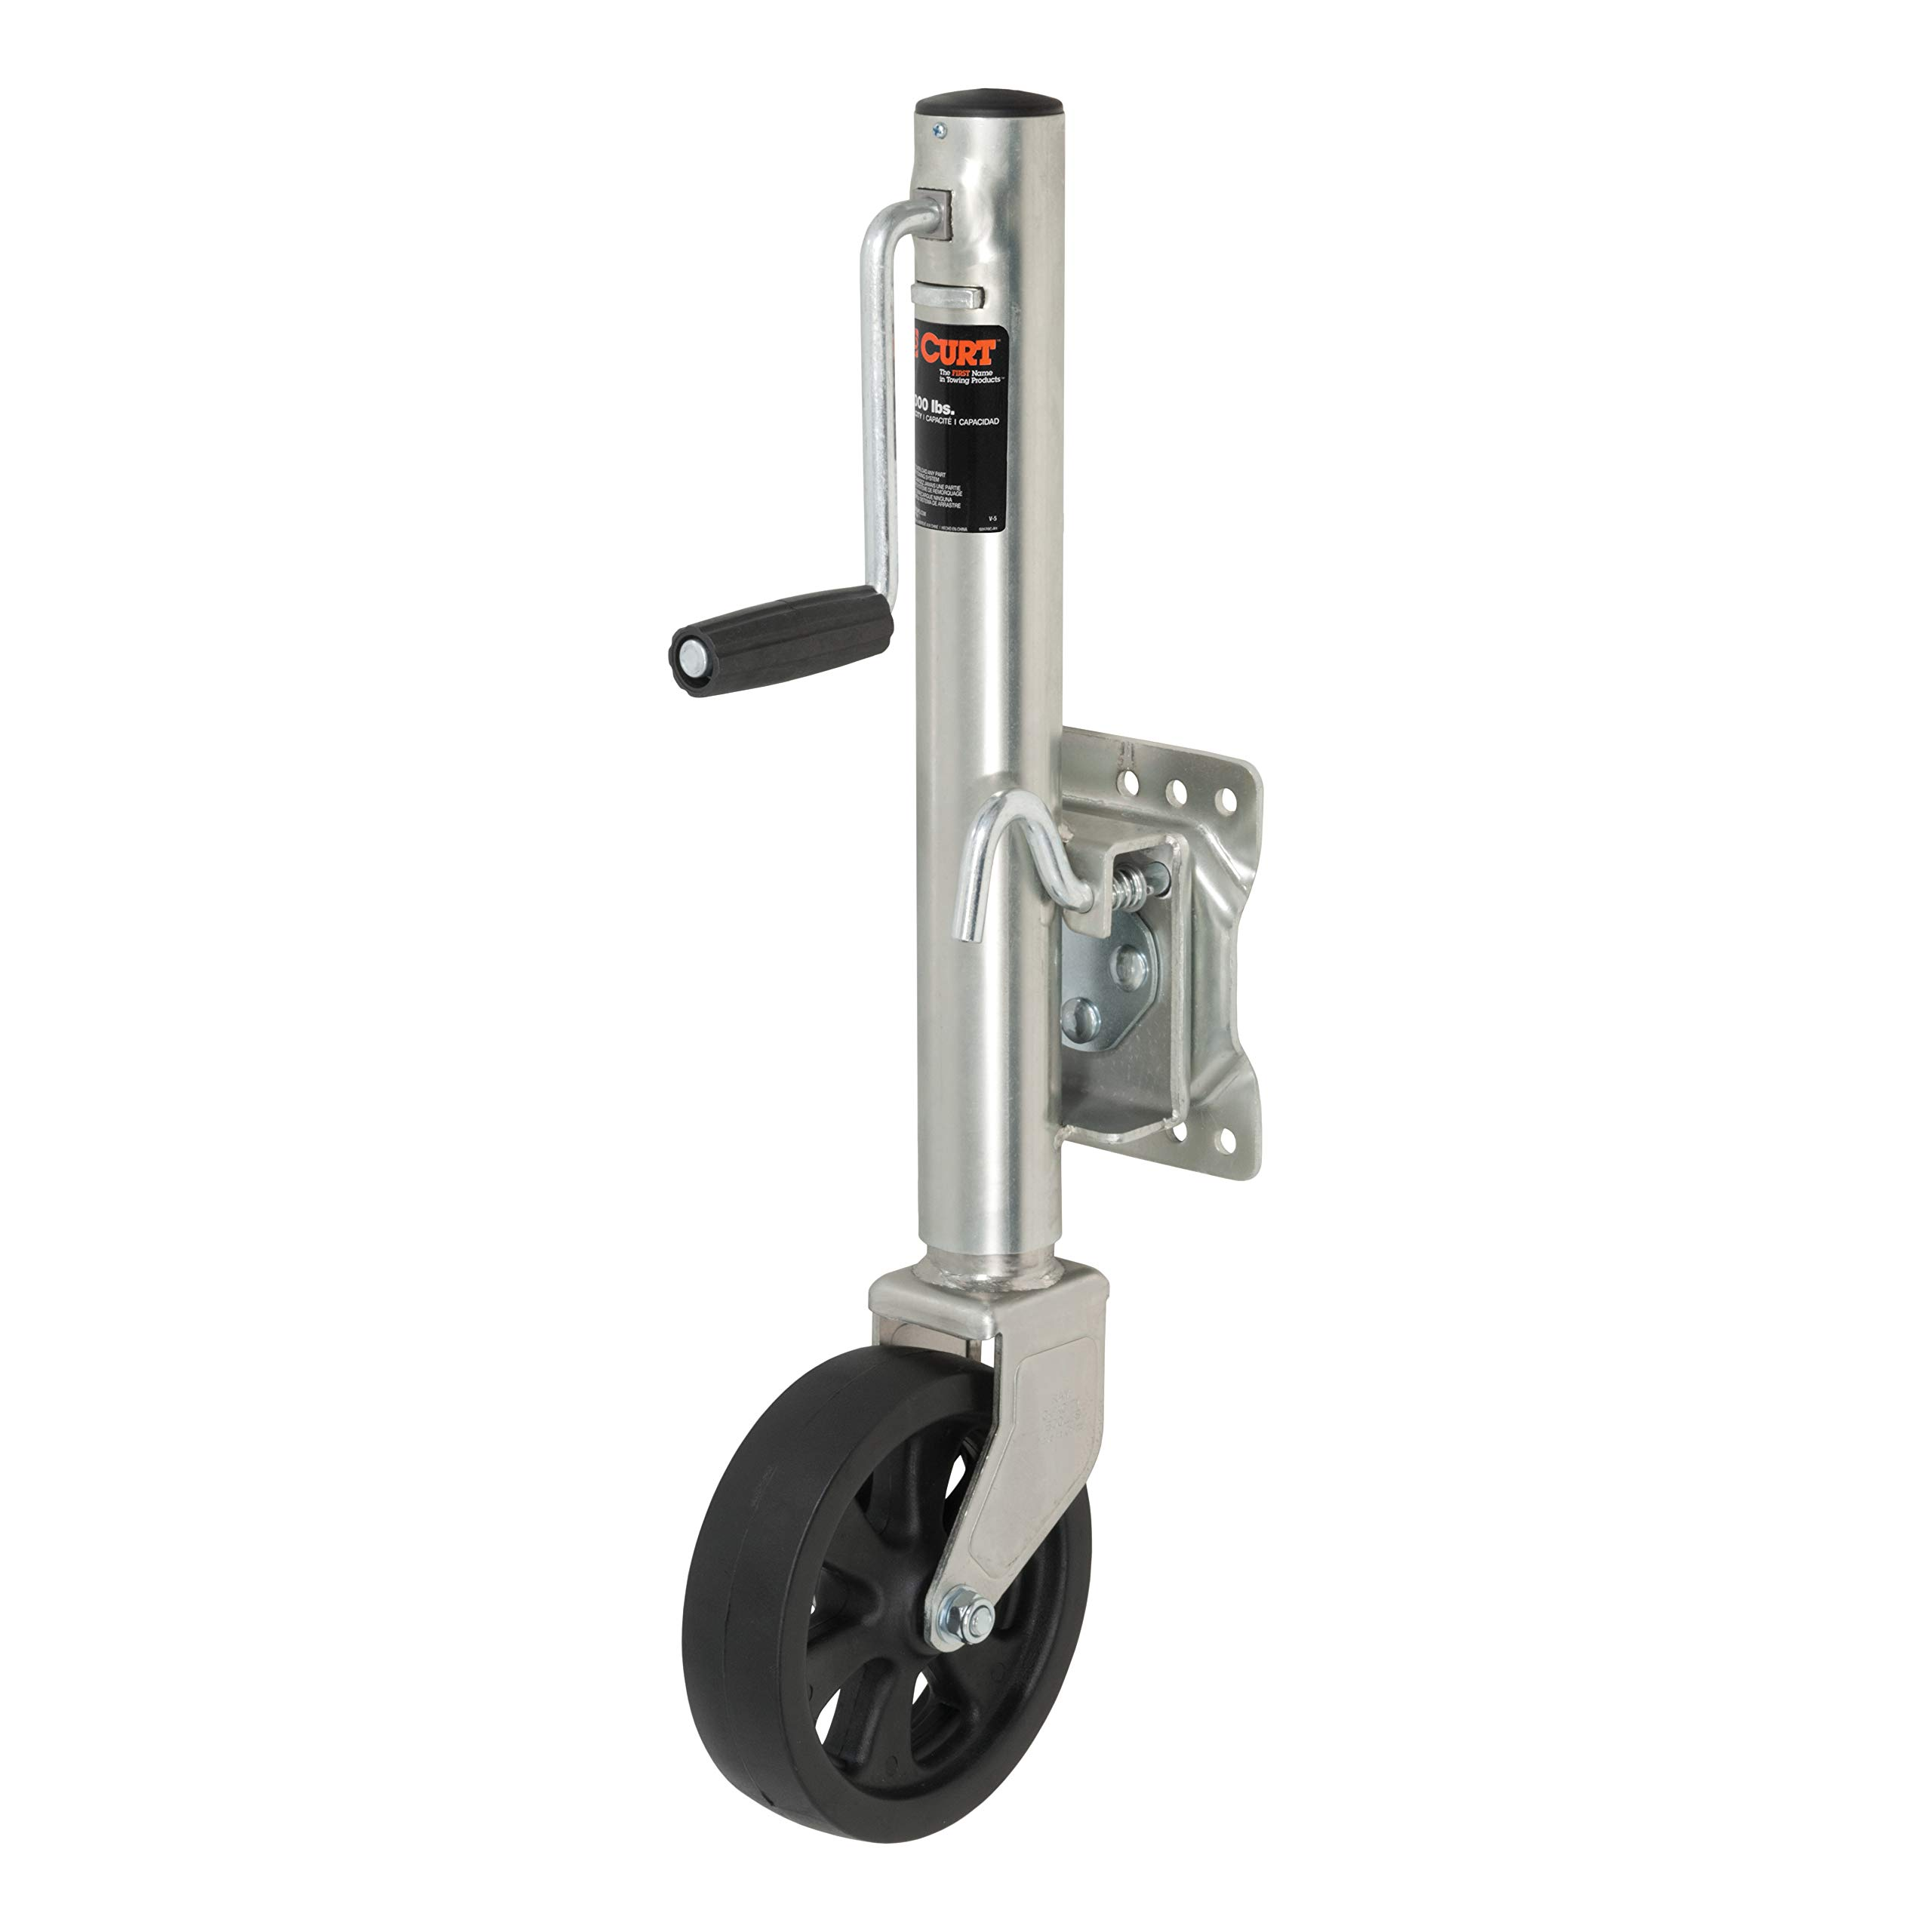 CURT 28115 Marine Boat Trailer Jack with 8-Inch Wheel 1,500 lbs, 11 Inches Vertical Travel by CURT